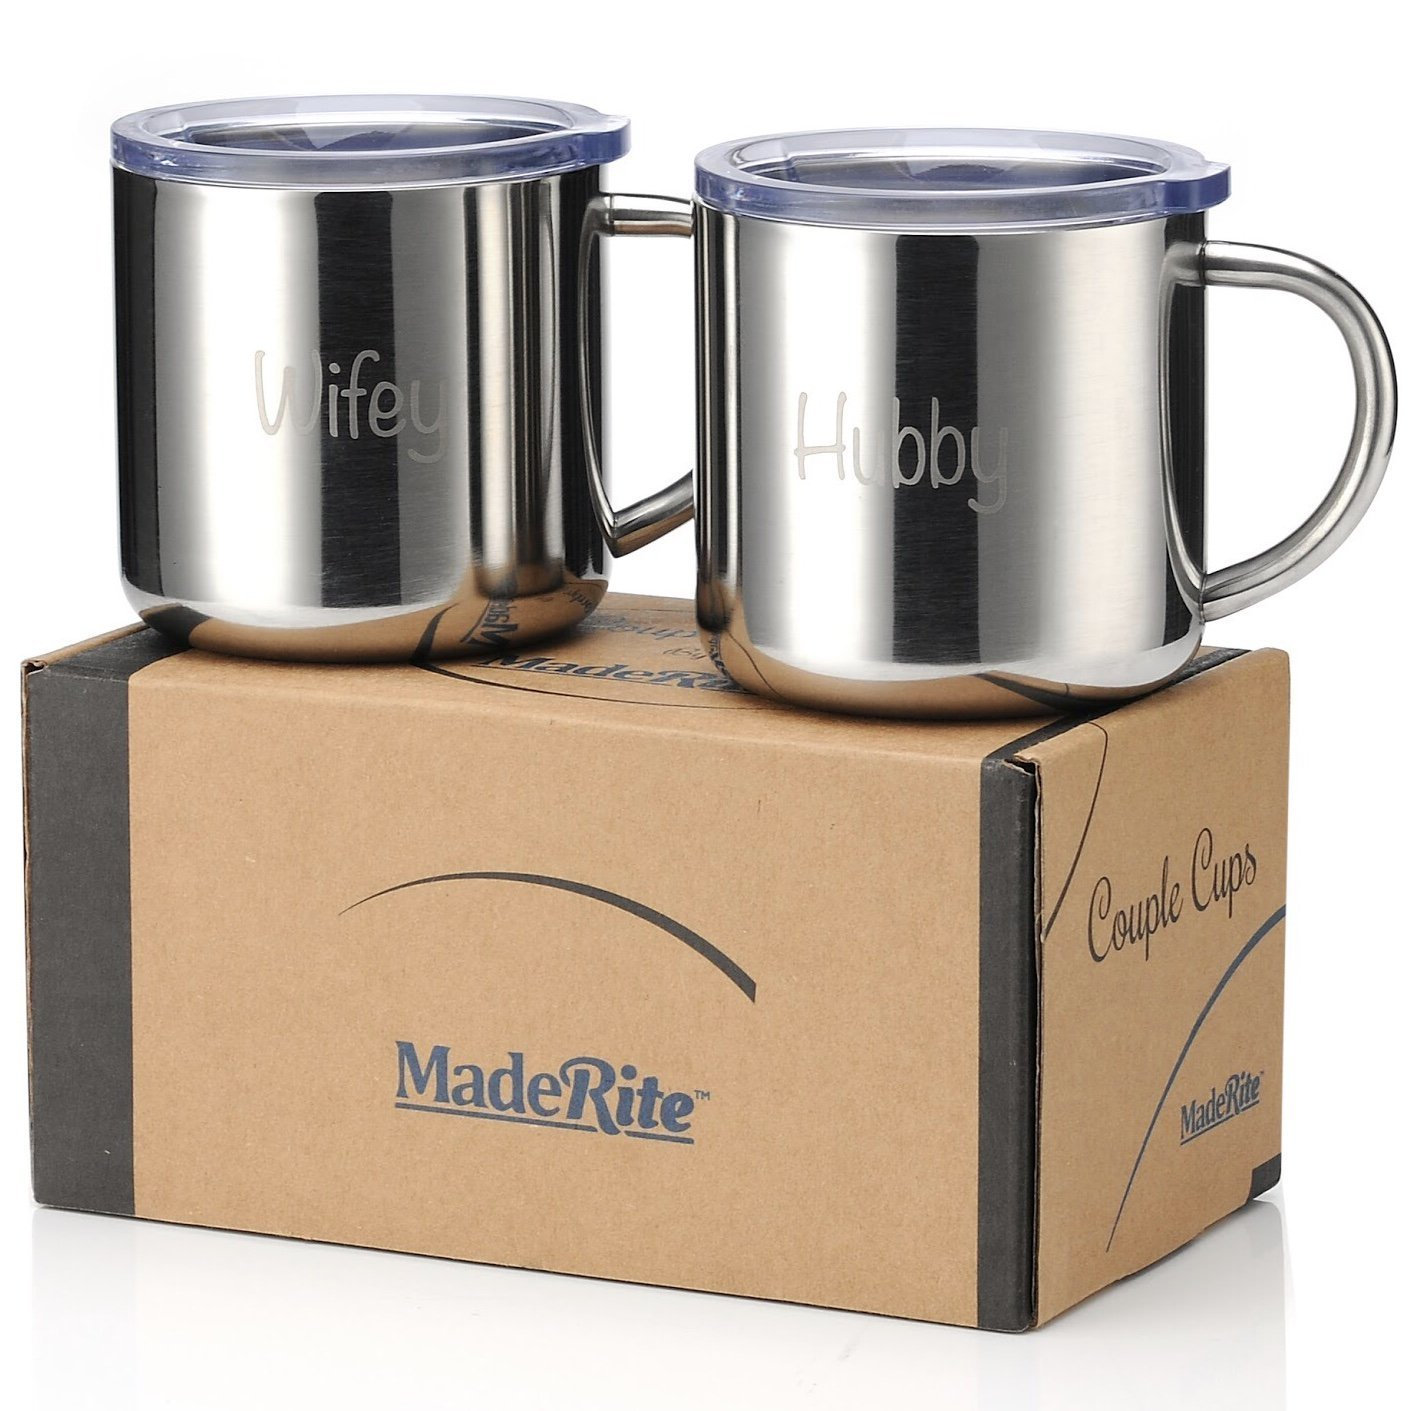 MadeRite Premium 304 Stainless Steel Couple Cups Coffee Mug Set 14 ounce (Wifey/Hubby)